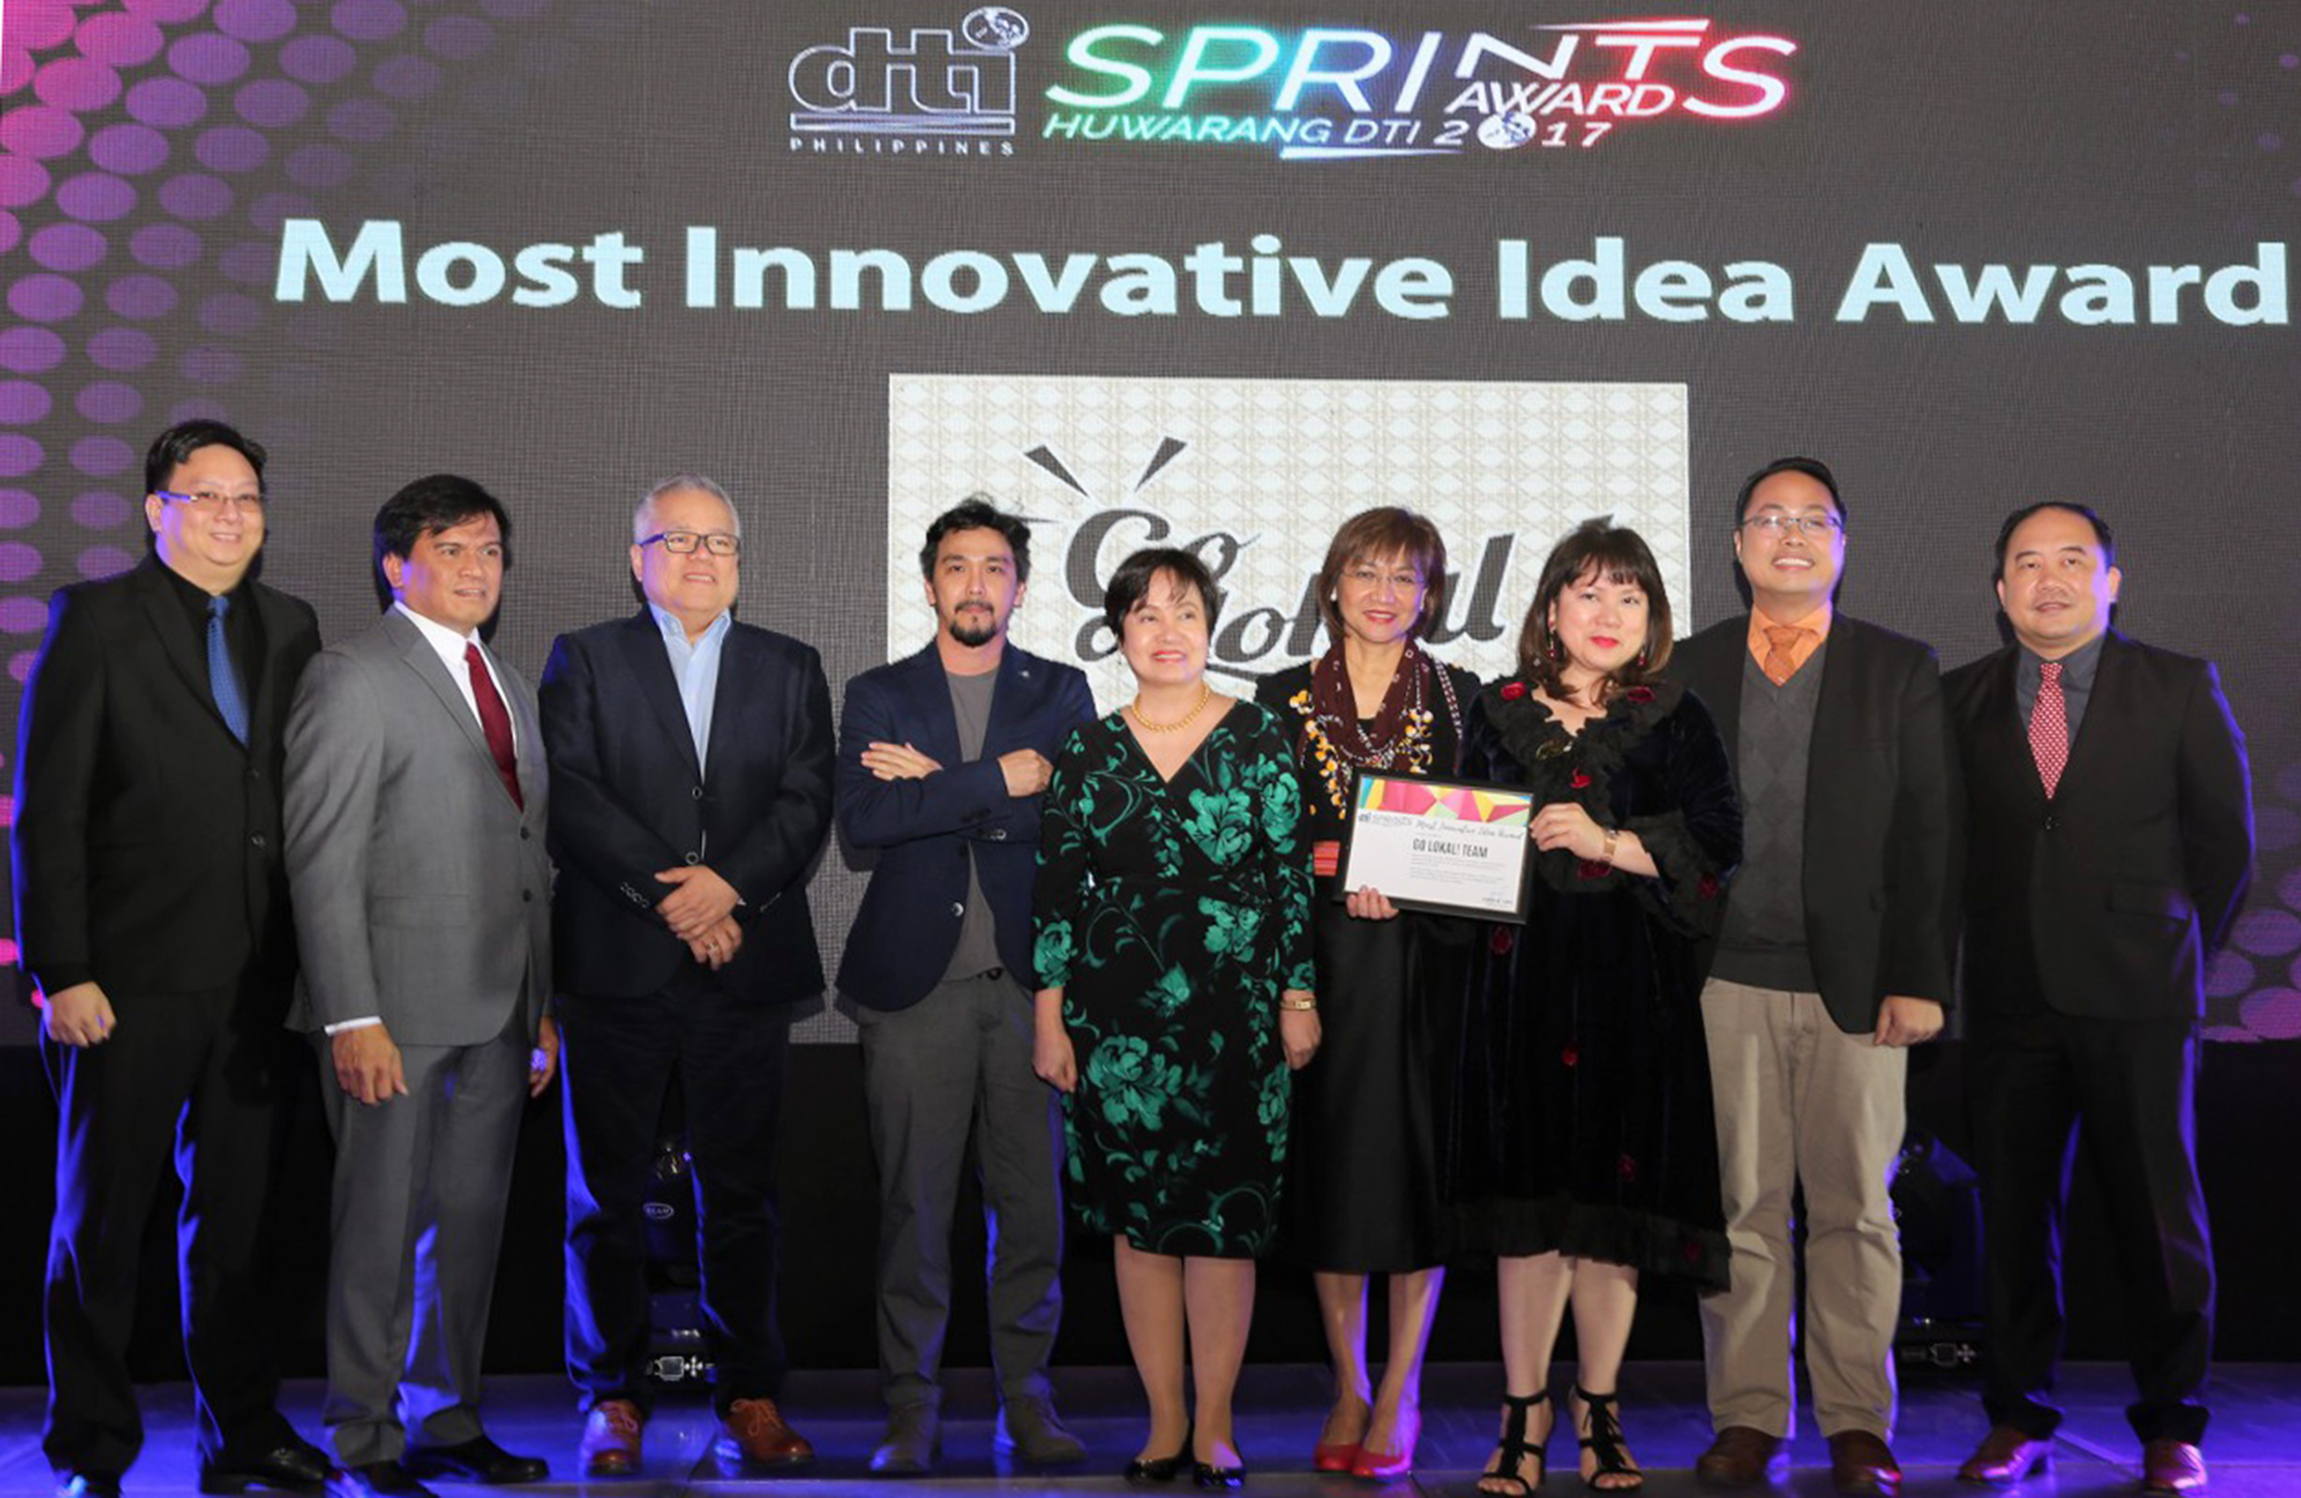 Go Lokal! bags Most Innovative Idea Award at SPRints 2017 Huwarang DTI